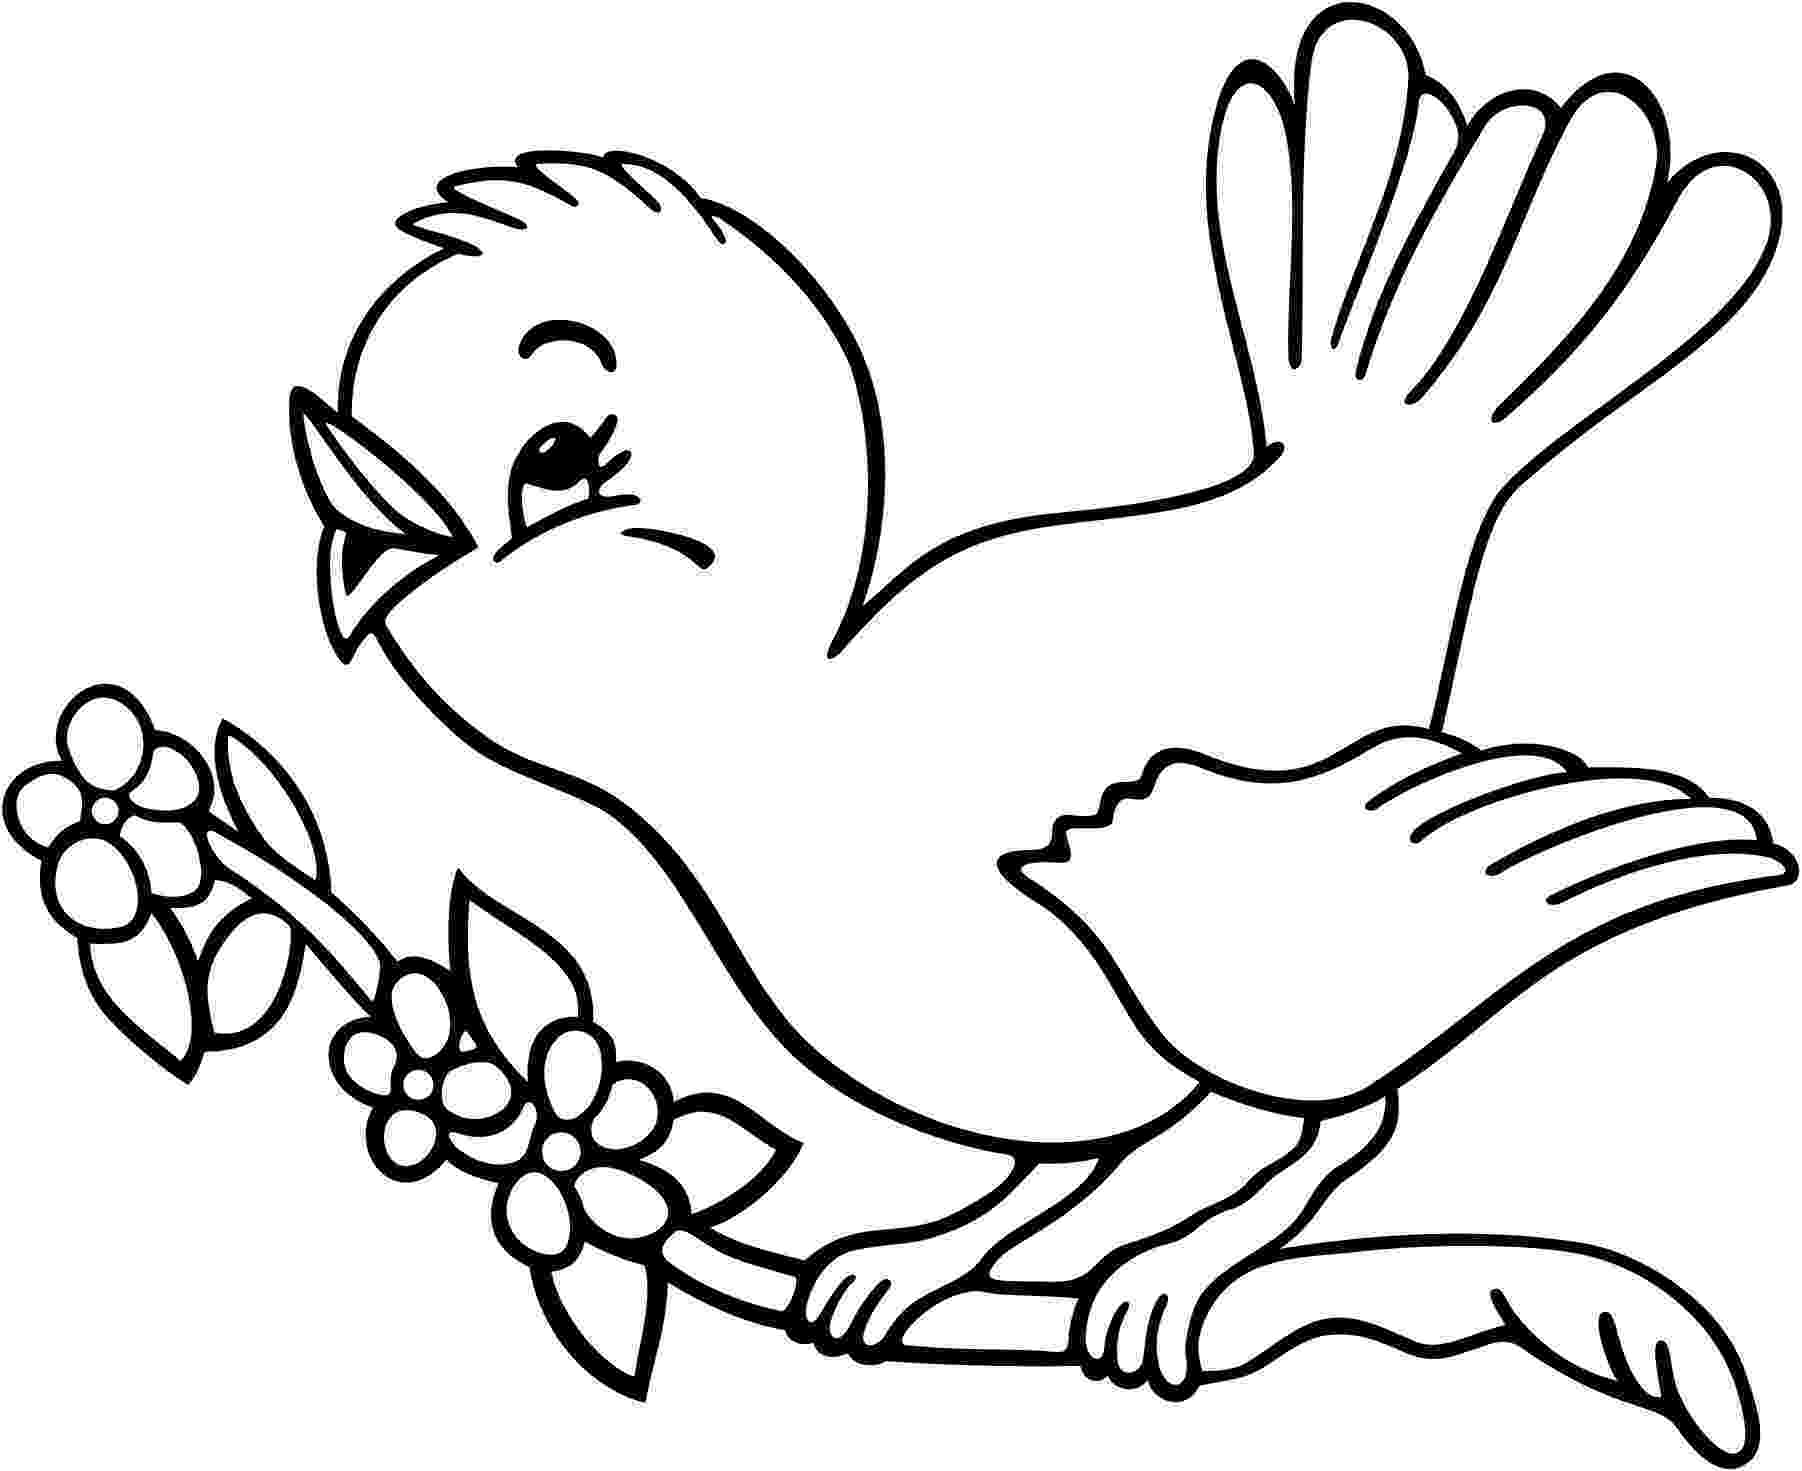 coloring book birds pictures perched canary bird coloring page bird coloring pages book pictures coloring birds